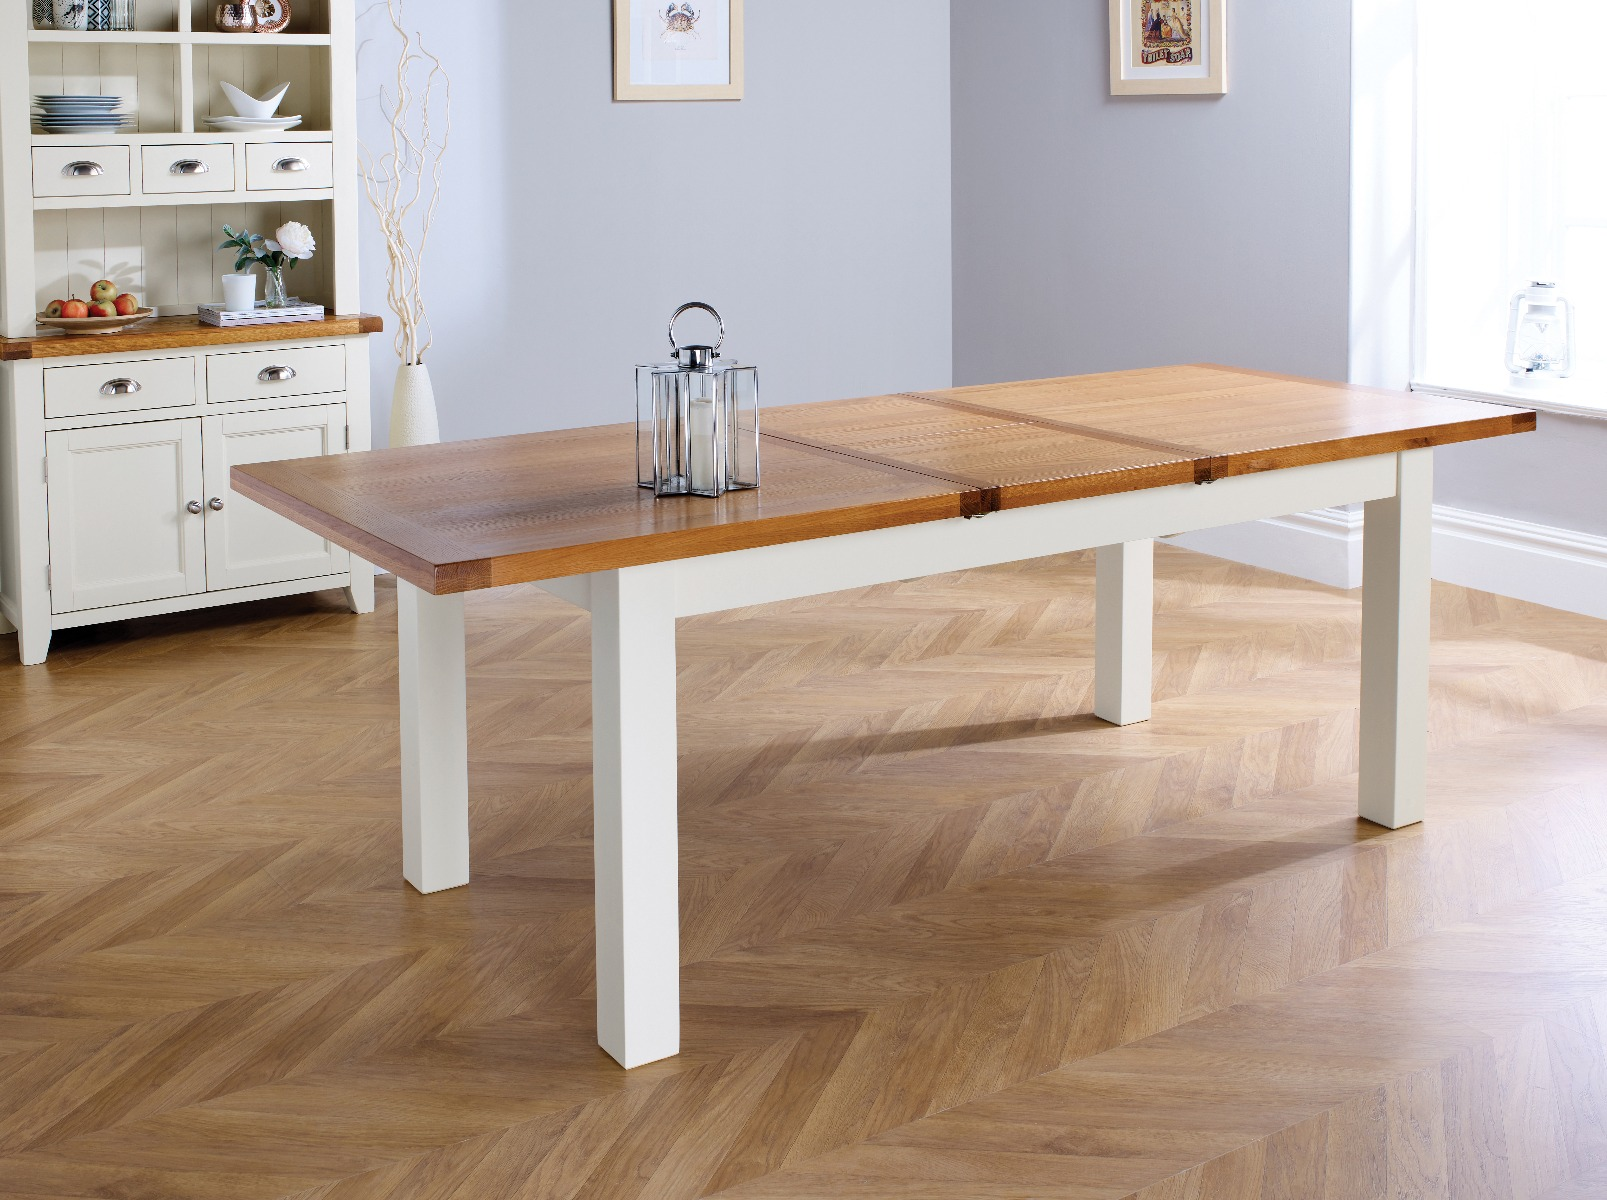 Country Oak 230cm Grey Painted Extending Dining Table U0026 8 Grasmere Grey  Painted Chairs